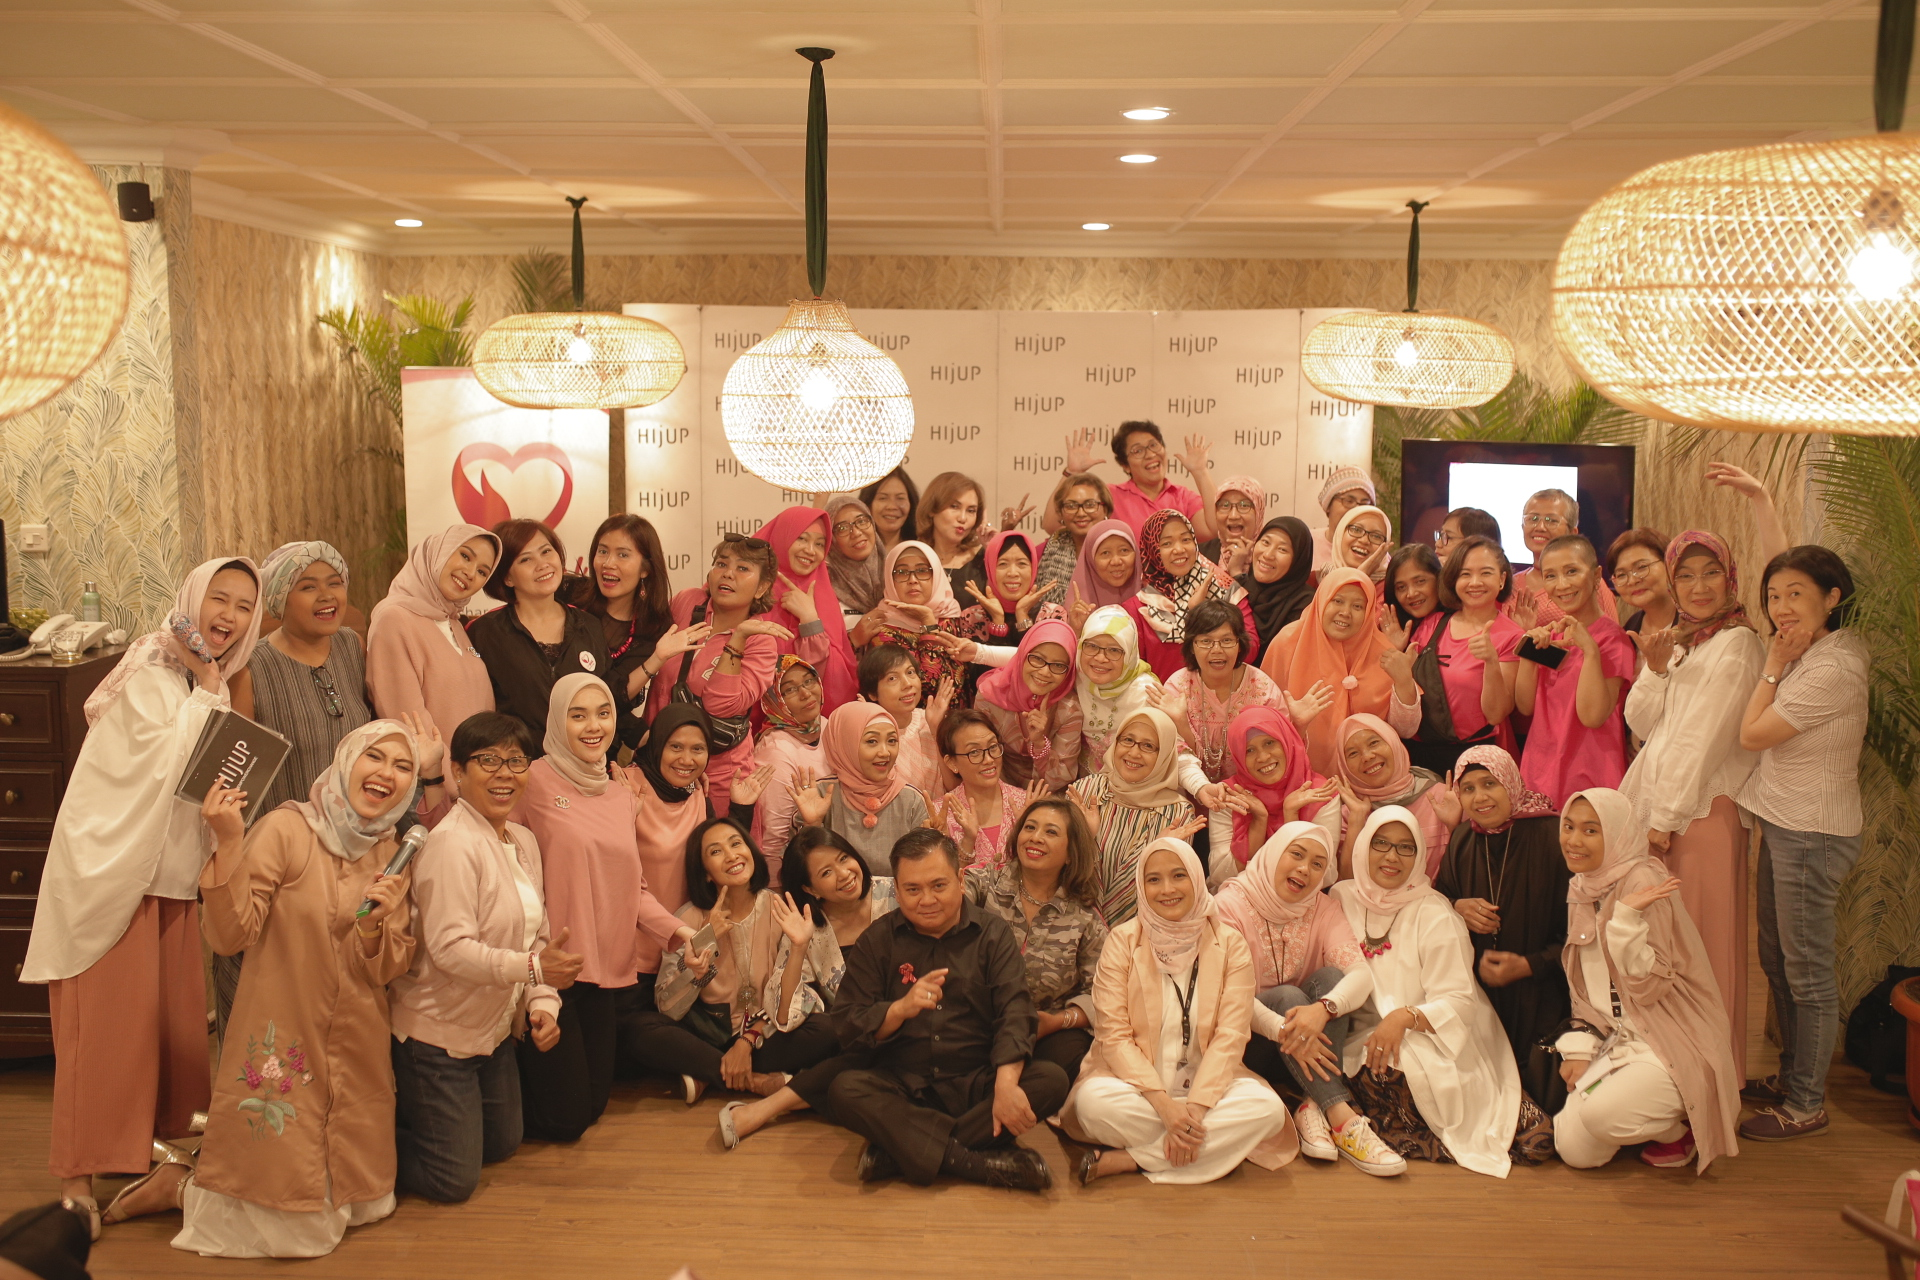 breast-cancer-awareness-event--10-